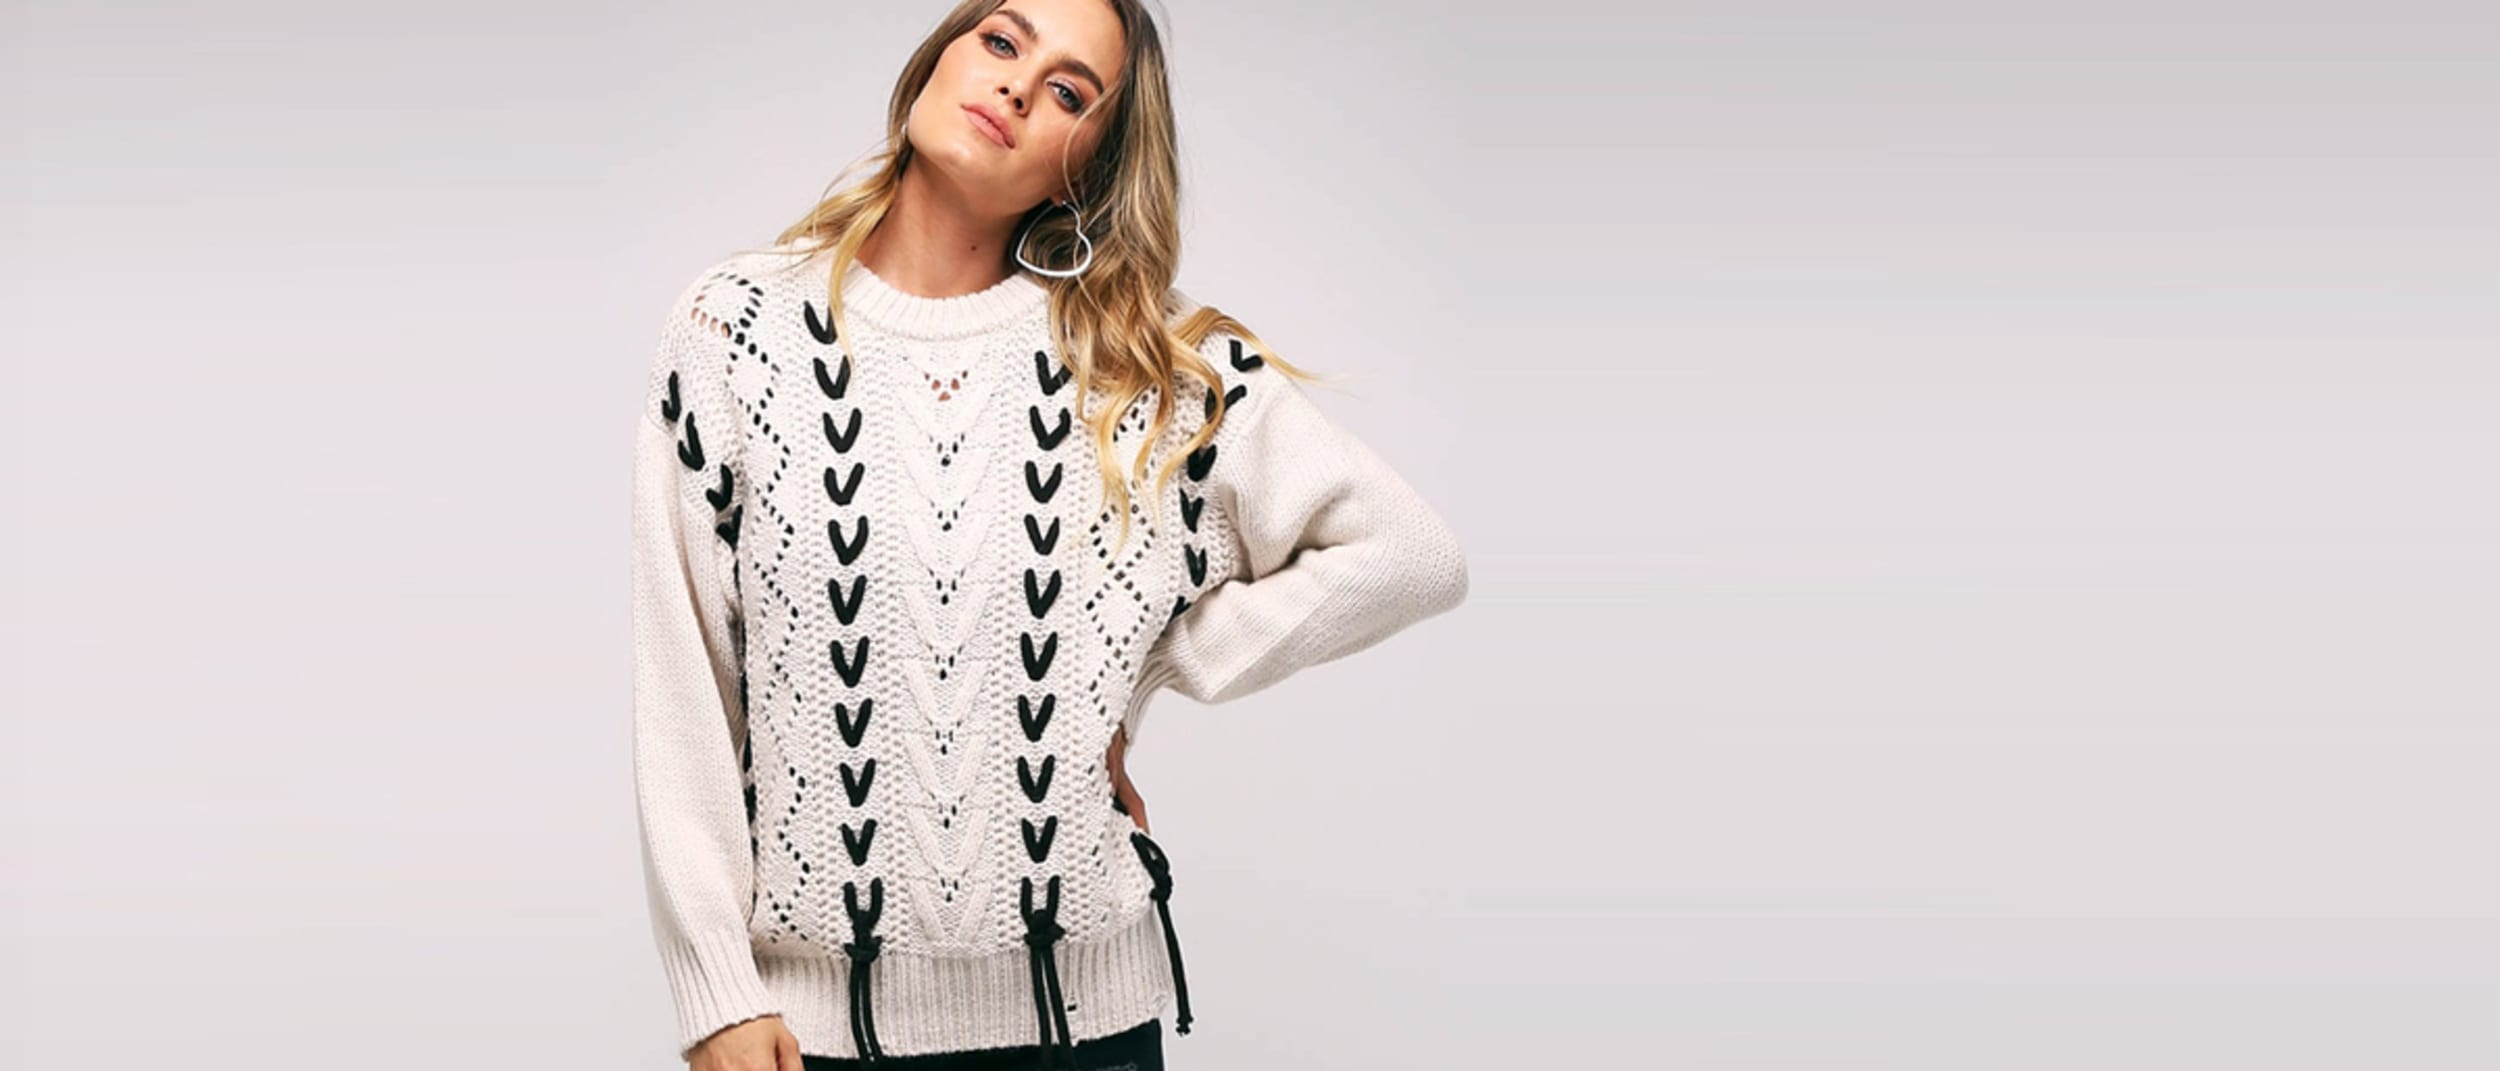 Ally Fashion: 30% off knitwear